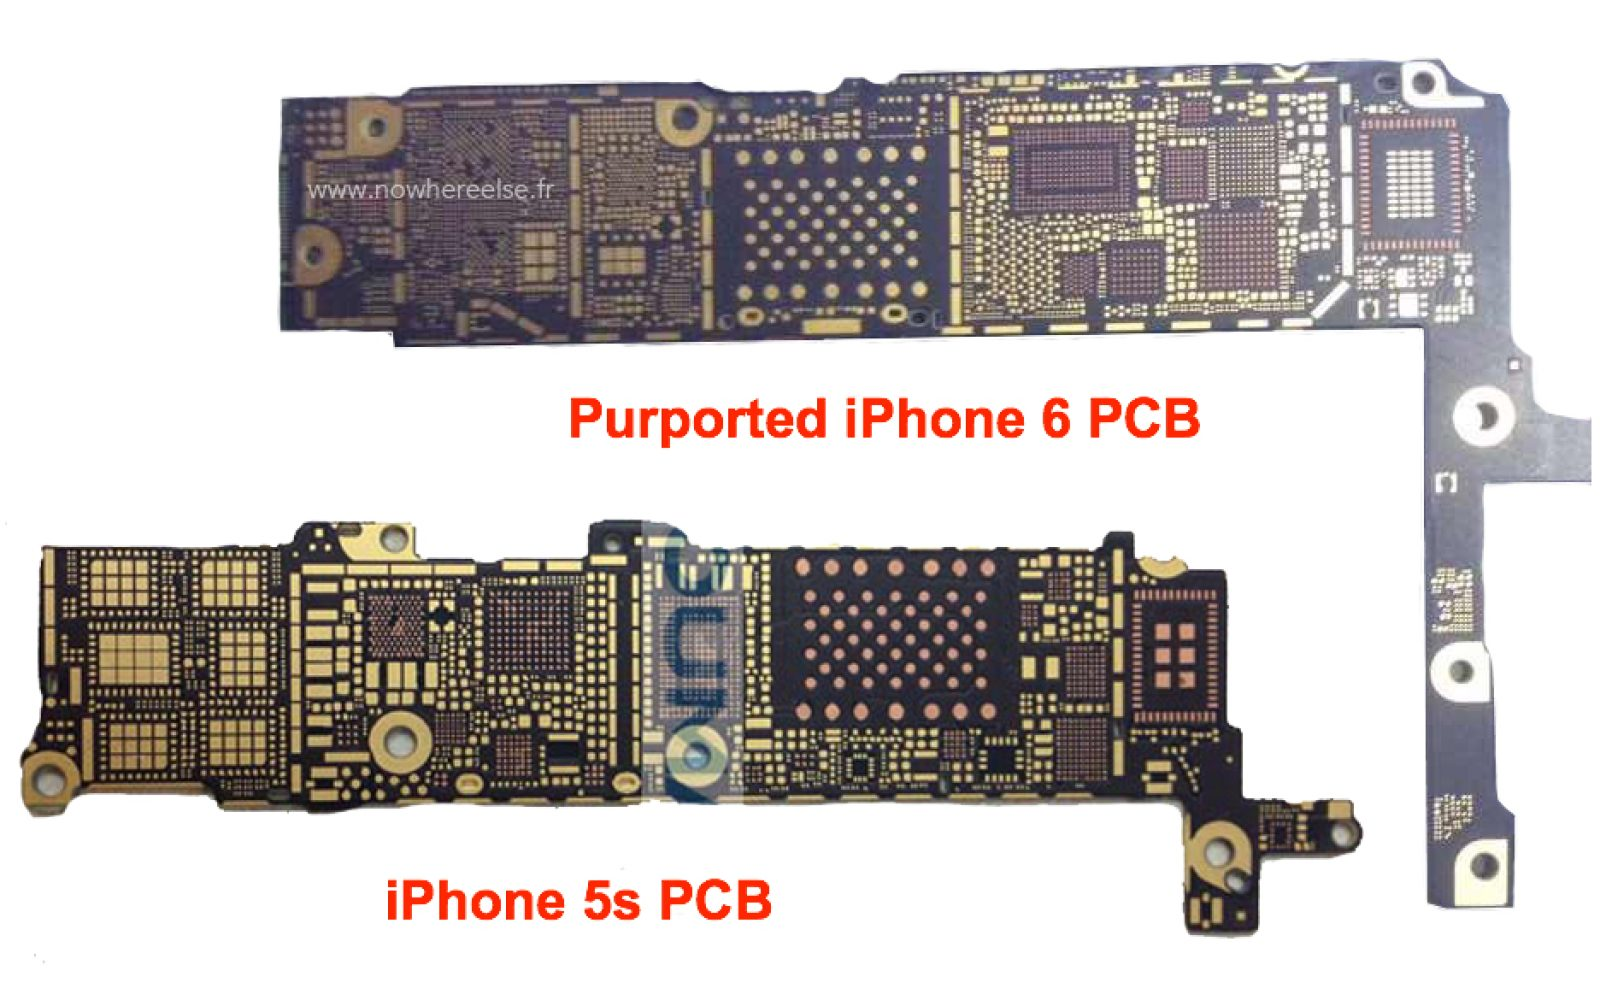 Printed Circuit Board 9to5mac Photos Pcb Circuits Computers Components Technology Image Nfc Rumored For Next Iphone Fourth Year In A Row This Time Based On Leaked